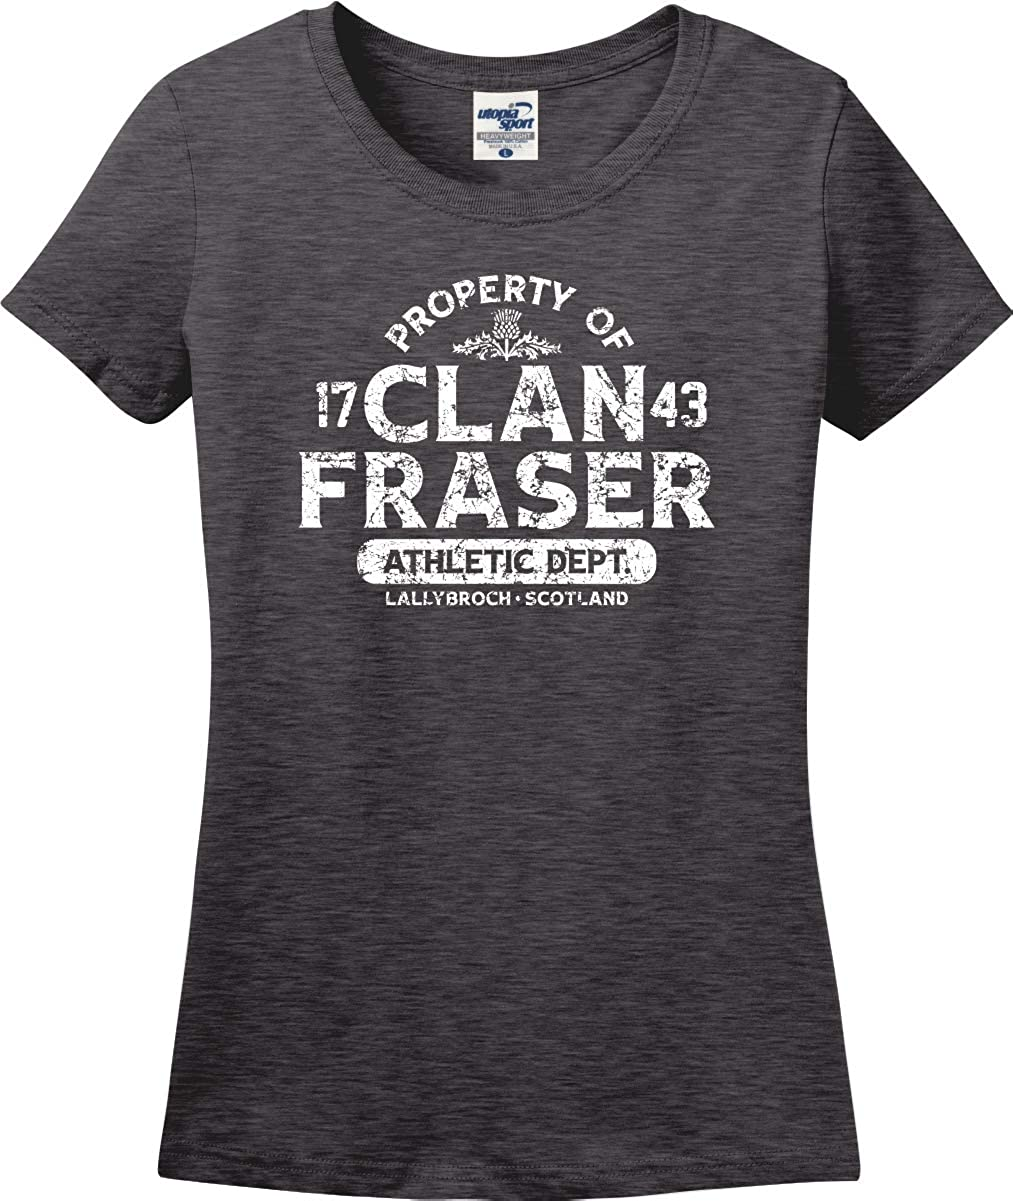 Clan Fraser Athletic Department 1743 Missy Fit Ladies T-Shirt (S-3X)